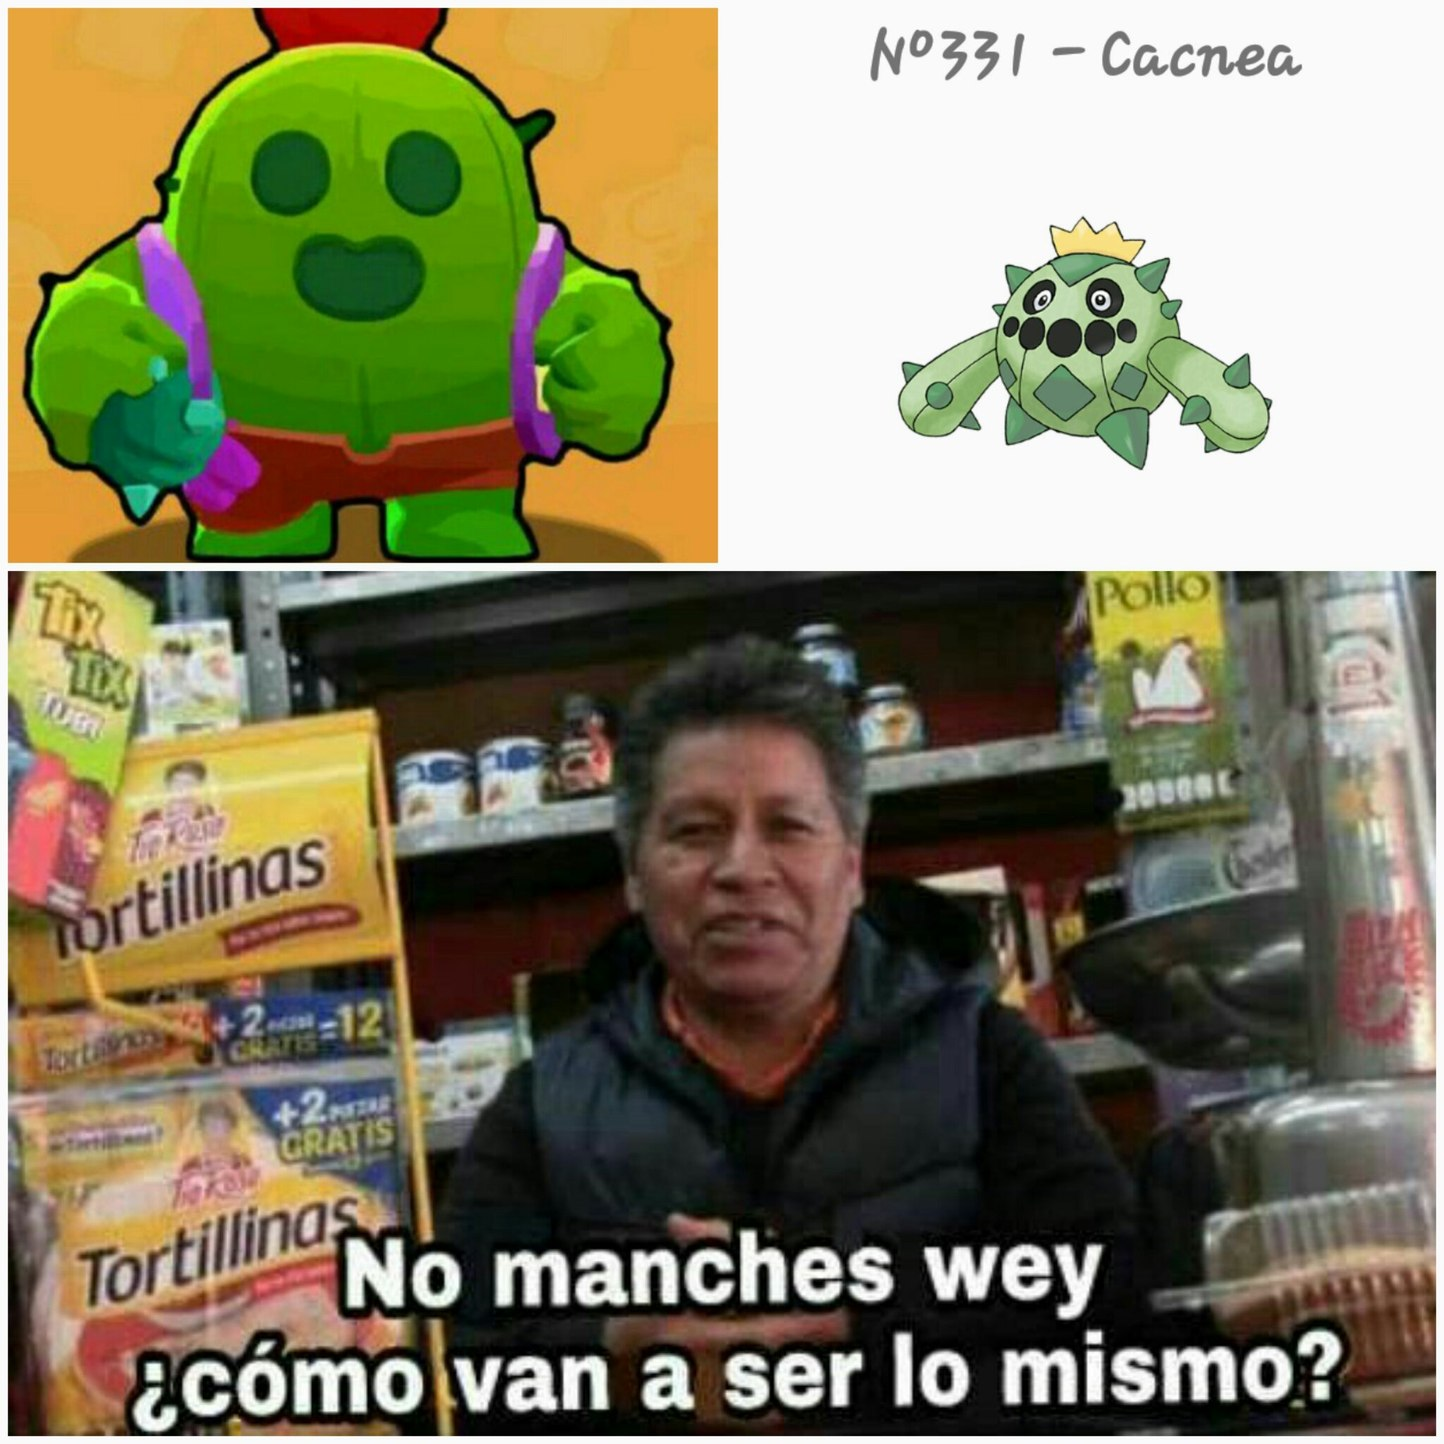 Con razon spike me era familiar - meme